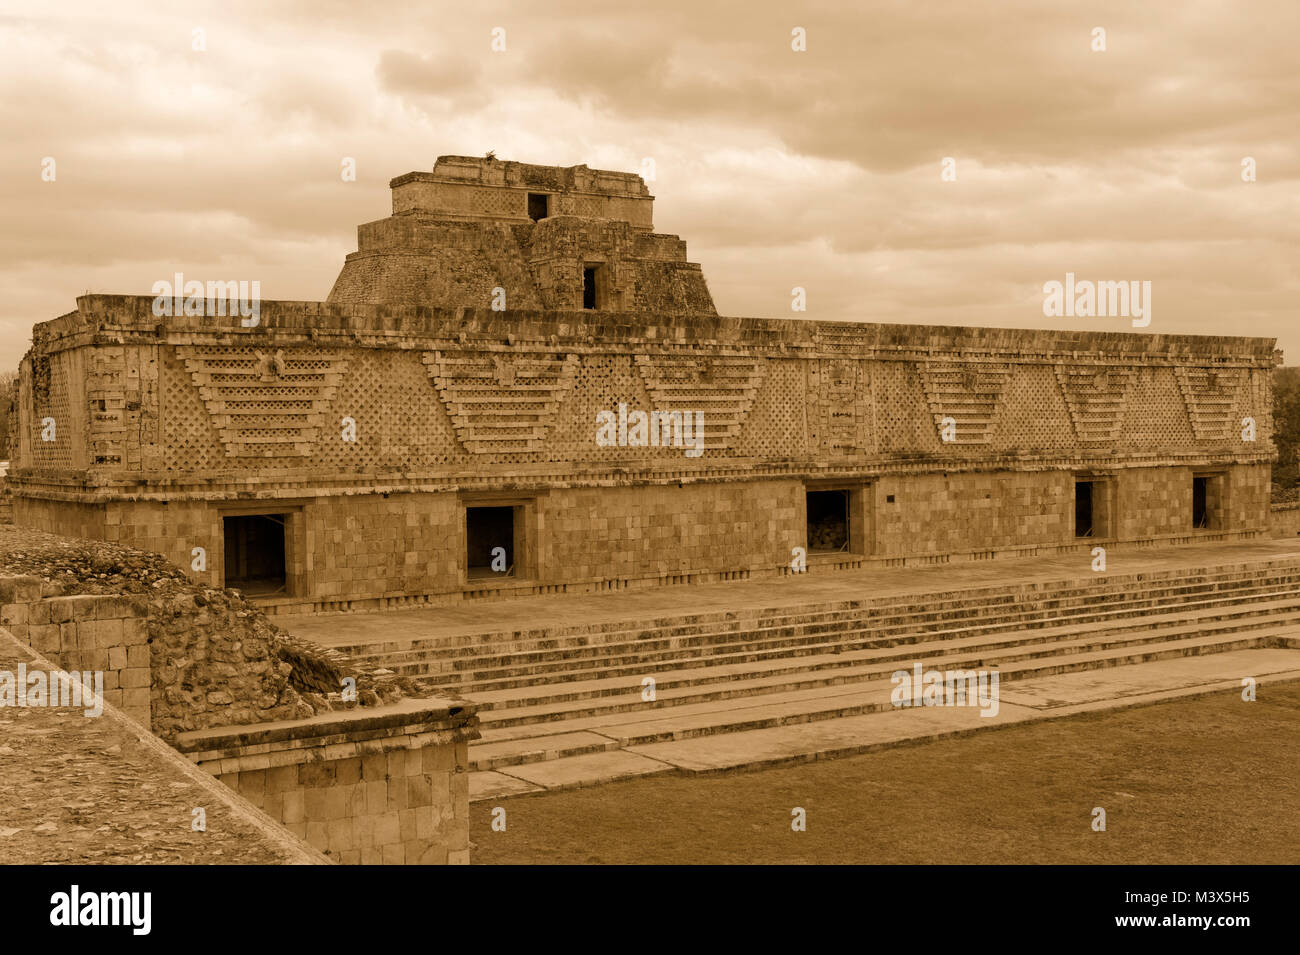 Sepia tone east building of the Nunnery Quadrangle with Pyramid of the Magician, Uxmal, Yucatan, Mexico - Stock Image